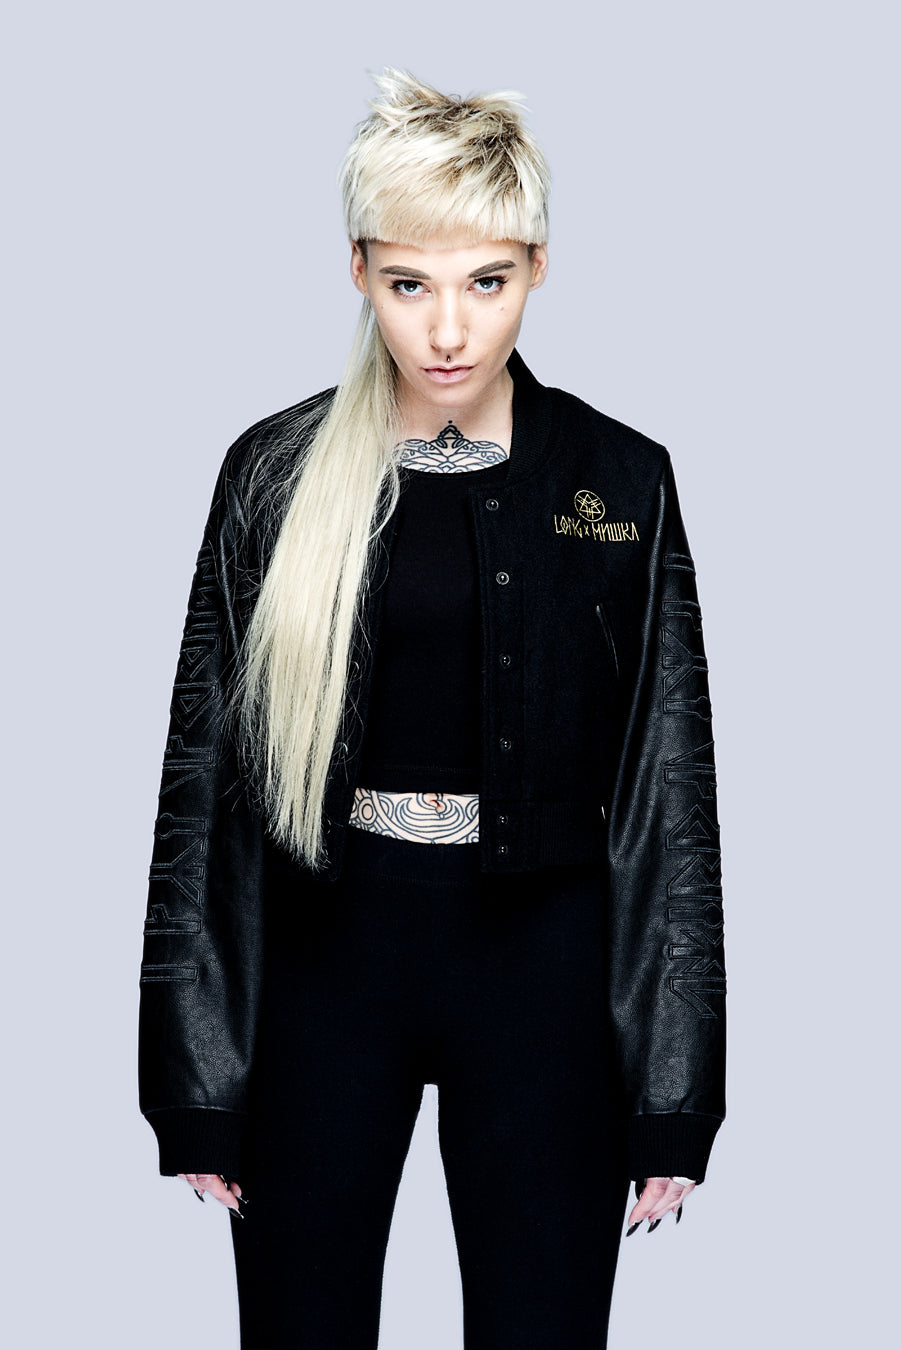 Death Adder Chain Crop Varsity Jacket (Gold)-3370